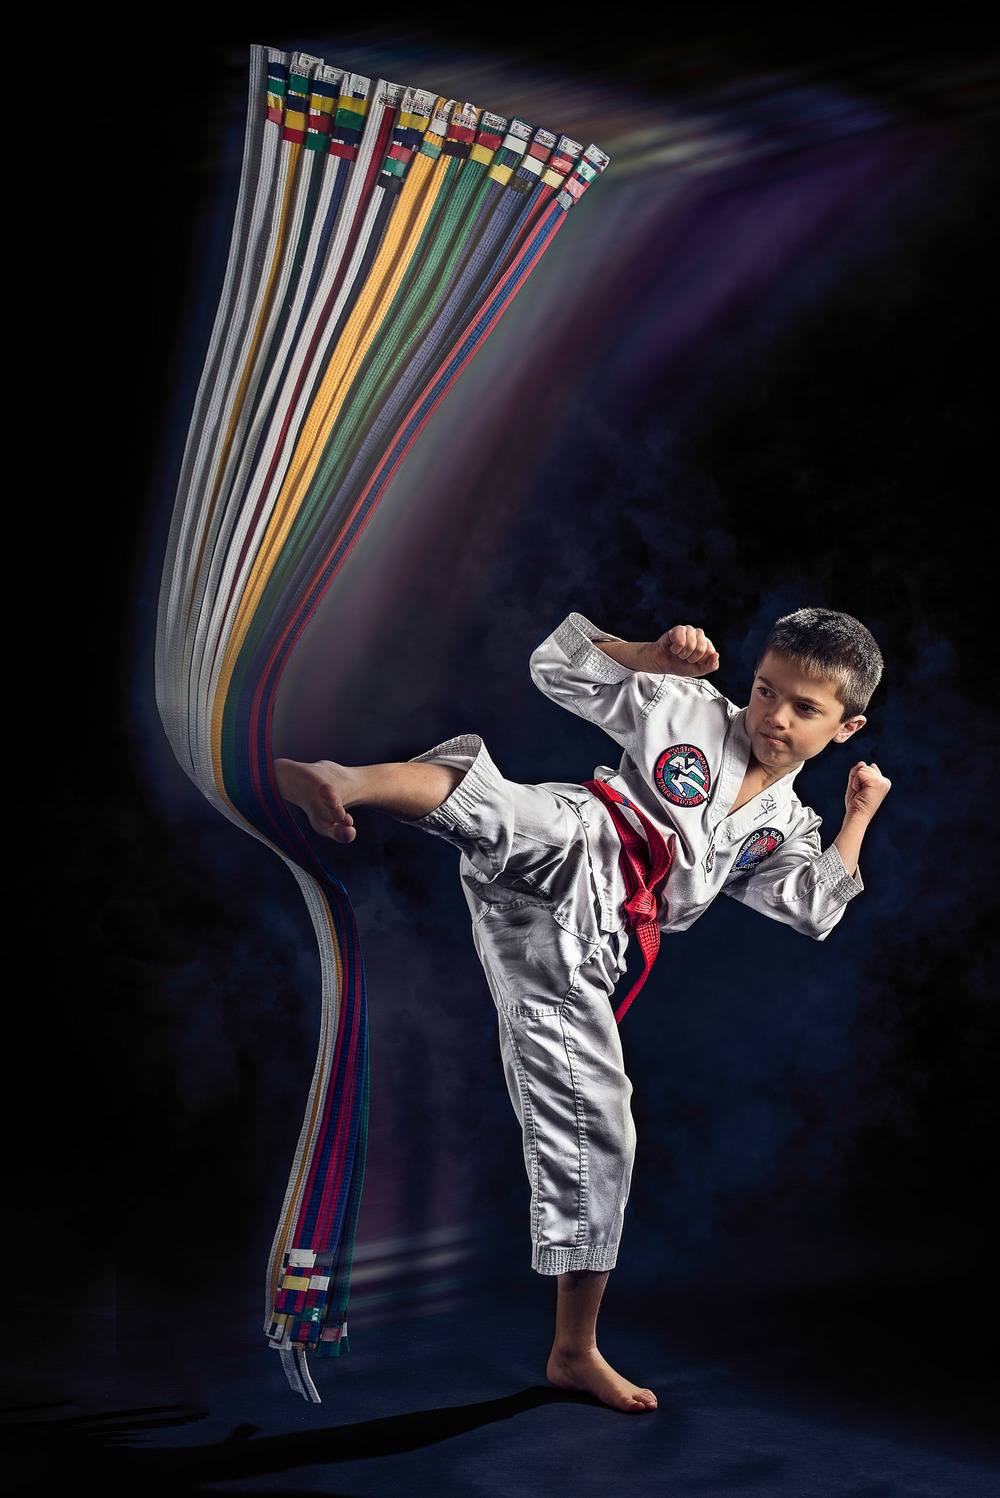 Taekwondo boy kicking at his belts